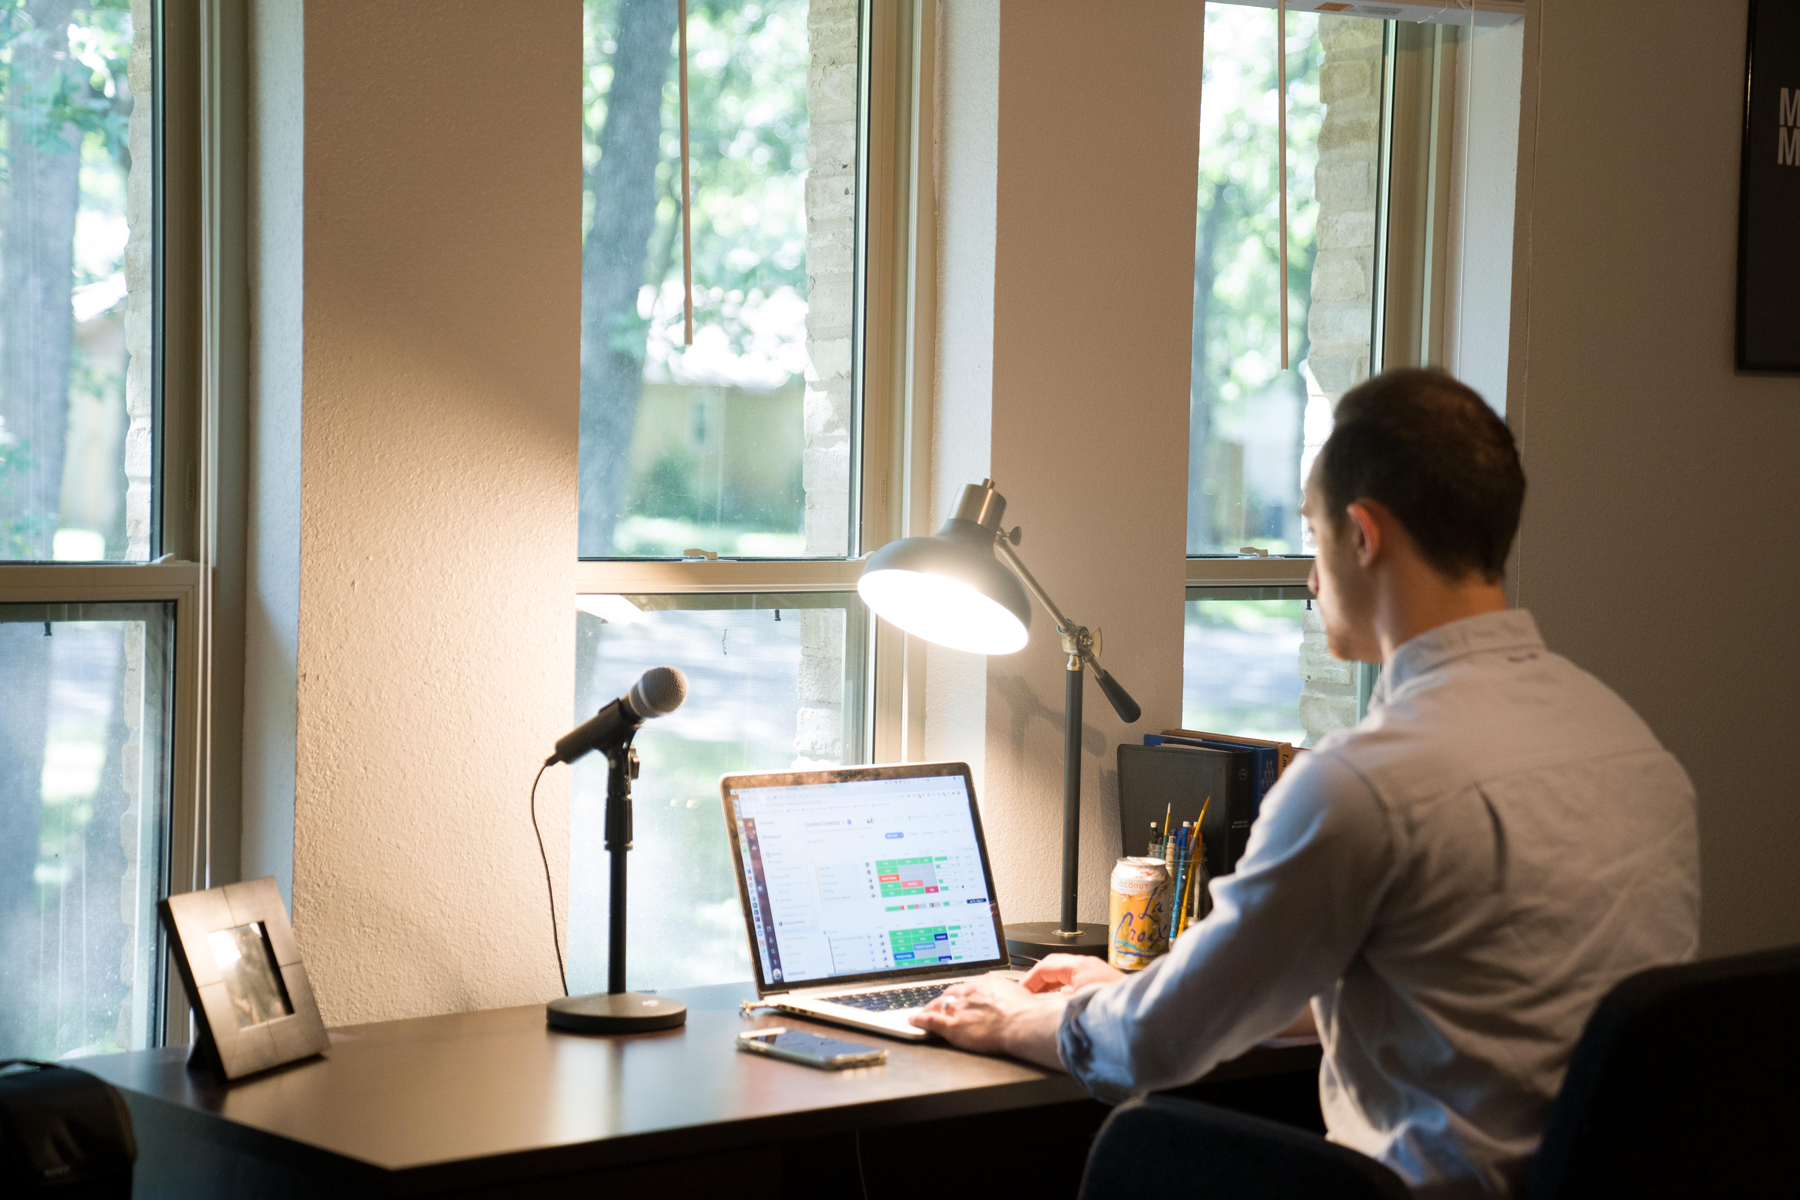 man sitting at desk working using laptop in home office - Credit to @ianharber, image supplied via Unsplash